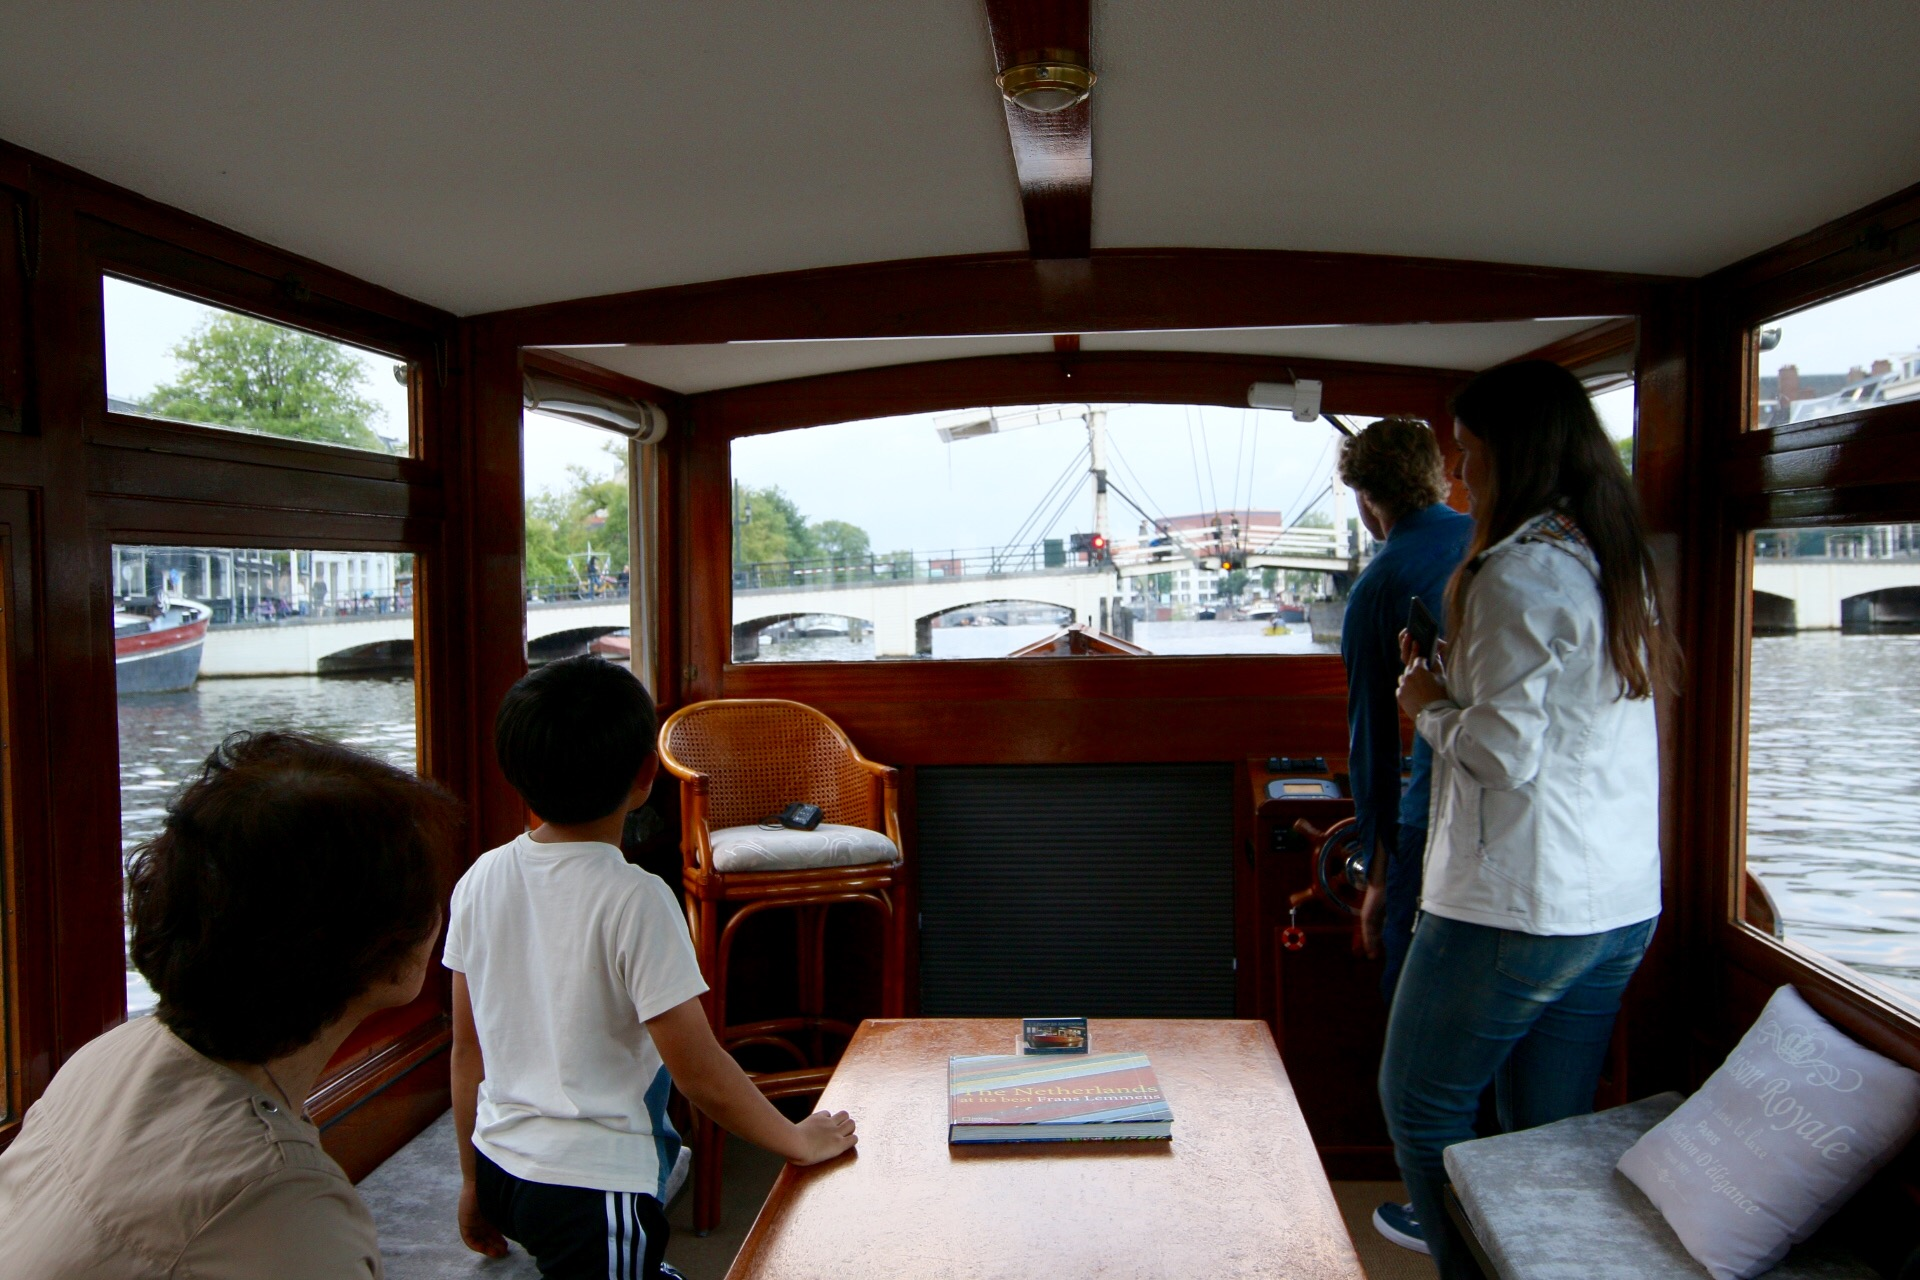 Welcome at Leemstar Amsterdam, for personal canal cruises. Leemstar provides in personal guided small boat canal tours. - foto 3